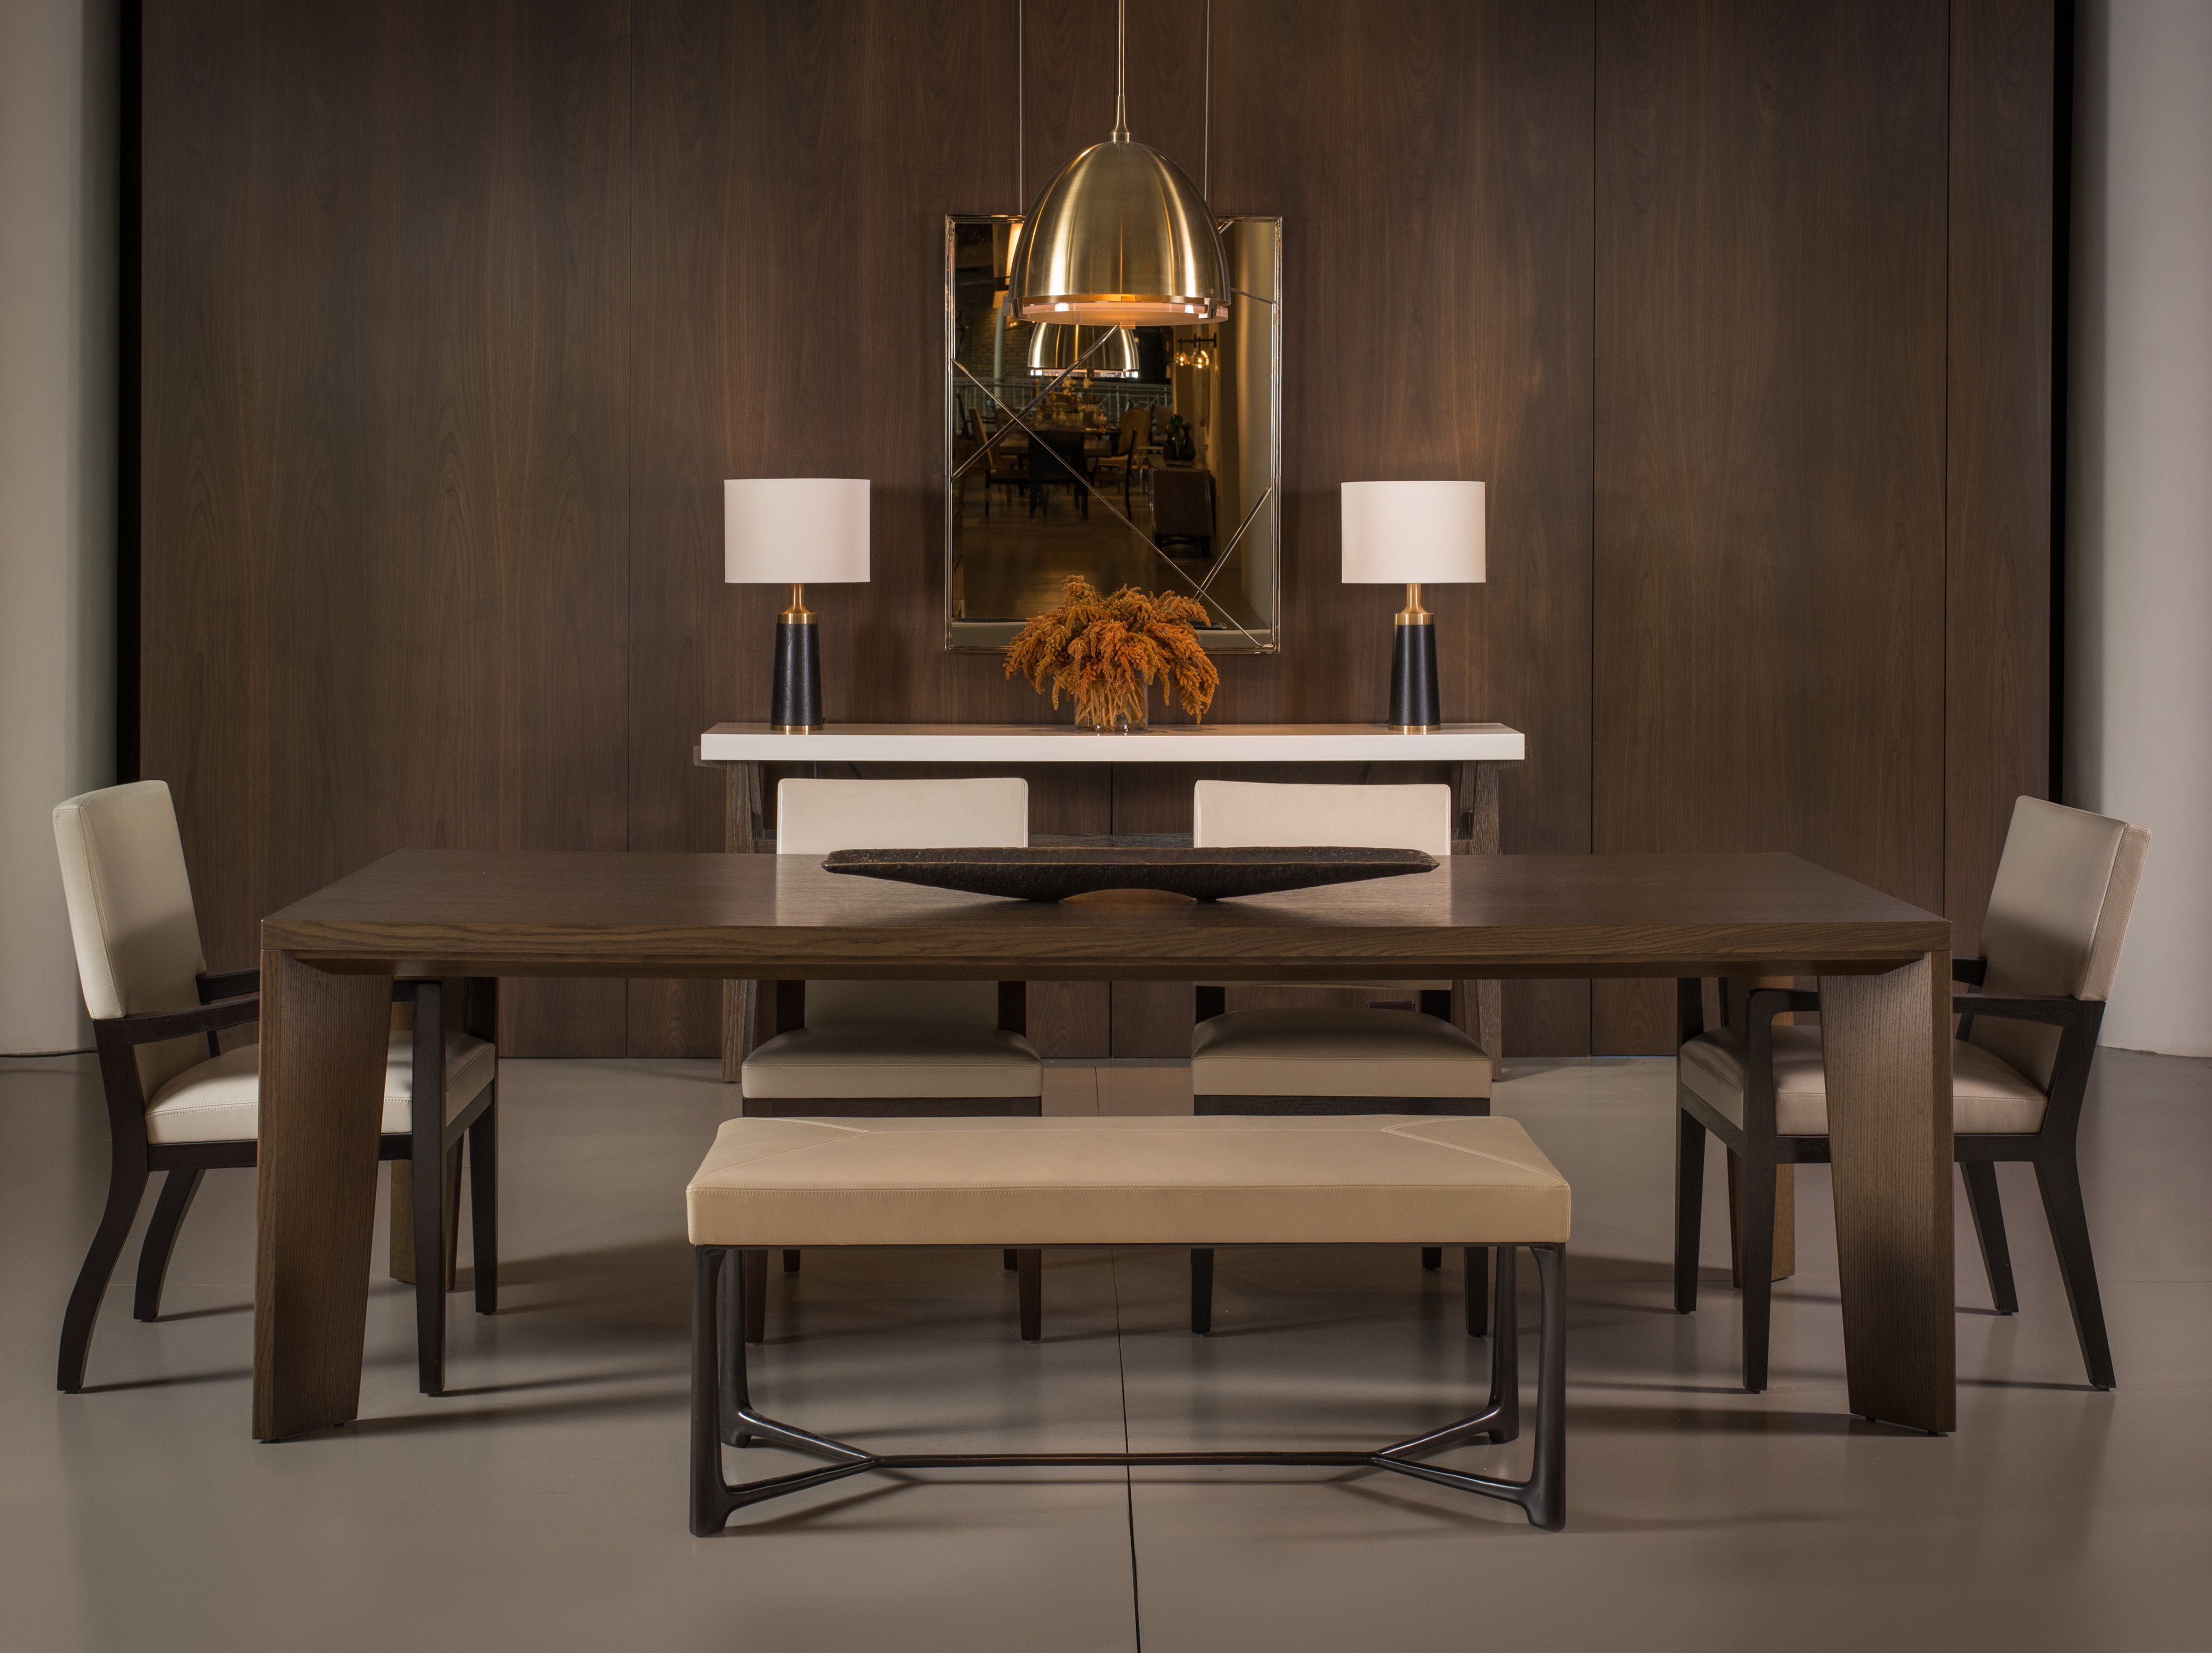 Keel Dining Table Dining Table Dining Room Design Dining